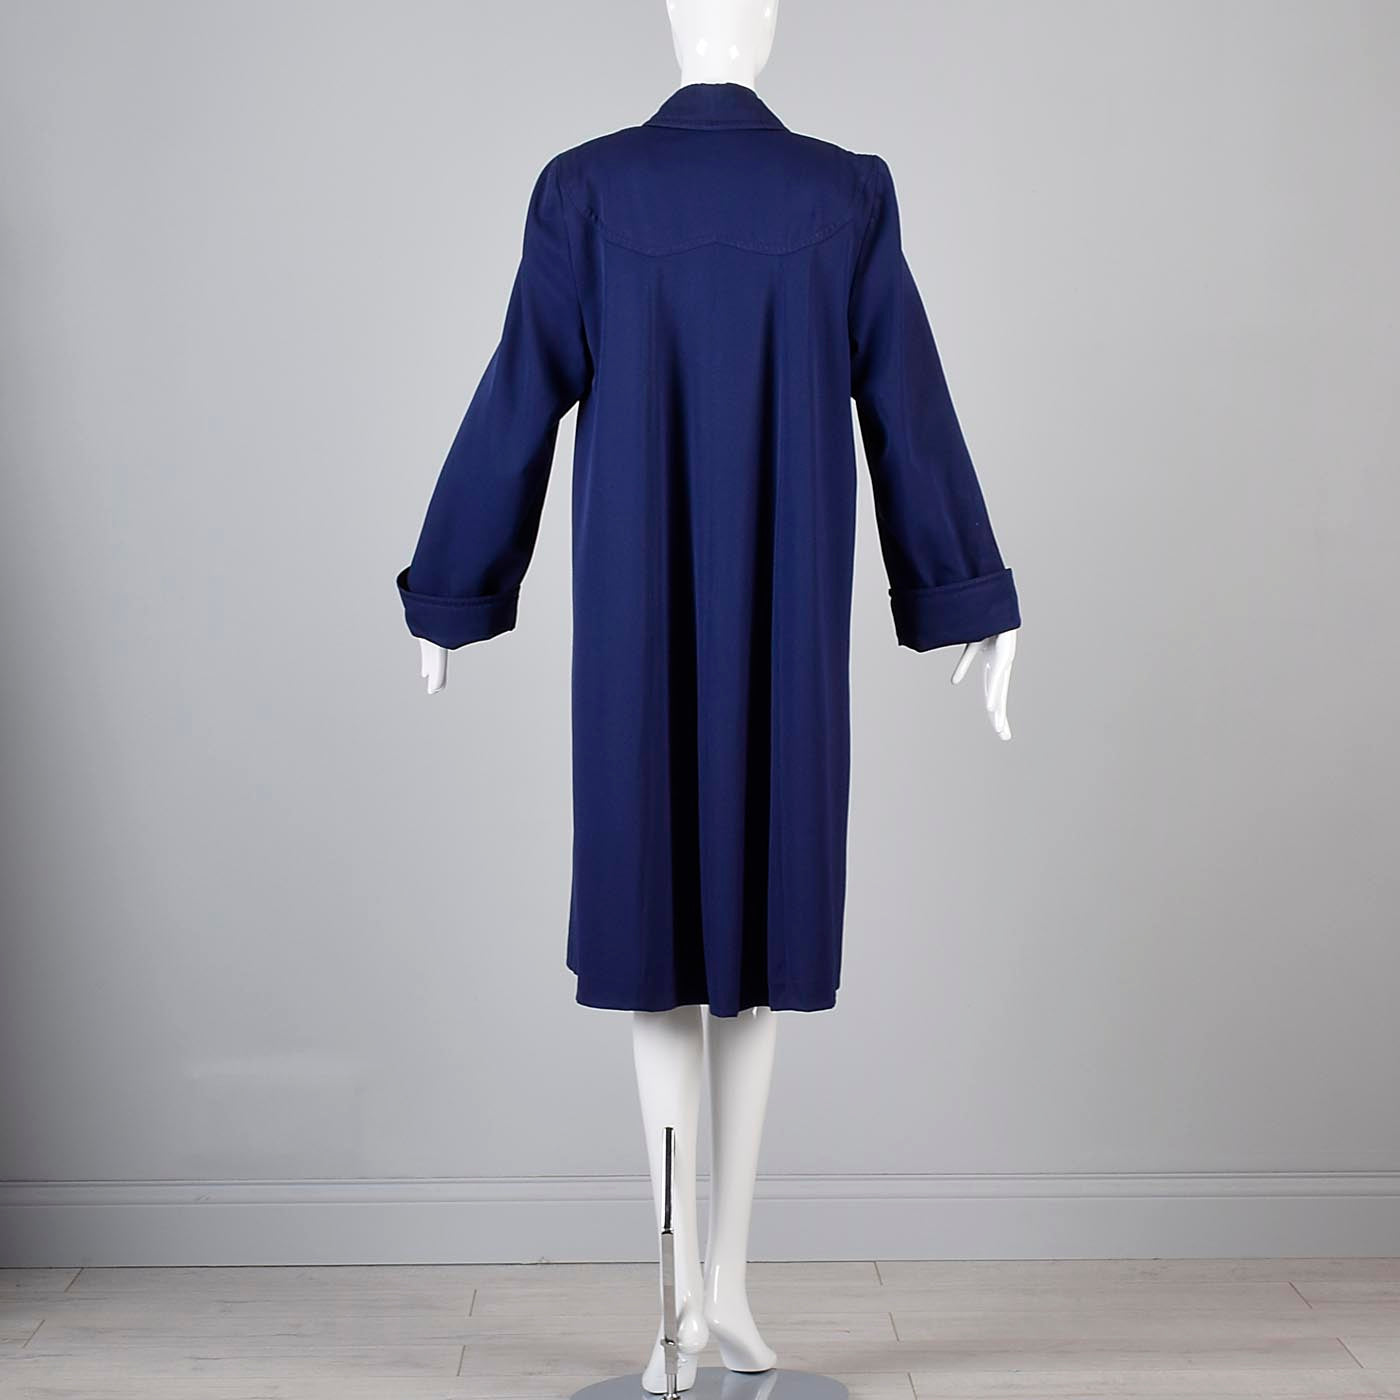 1940s Navy Coat with Lucite Button